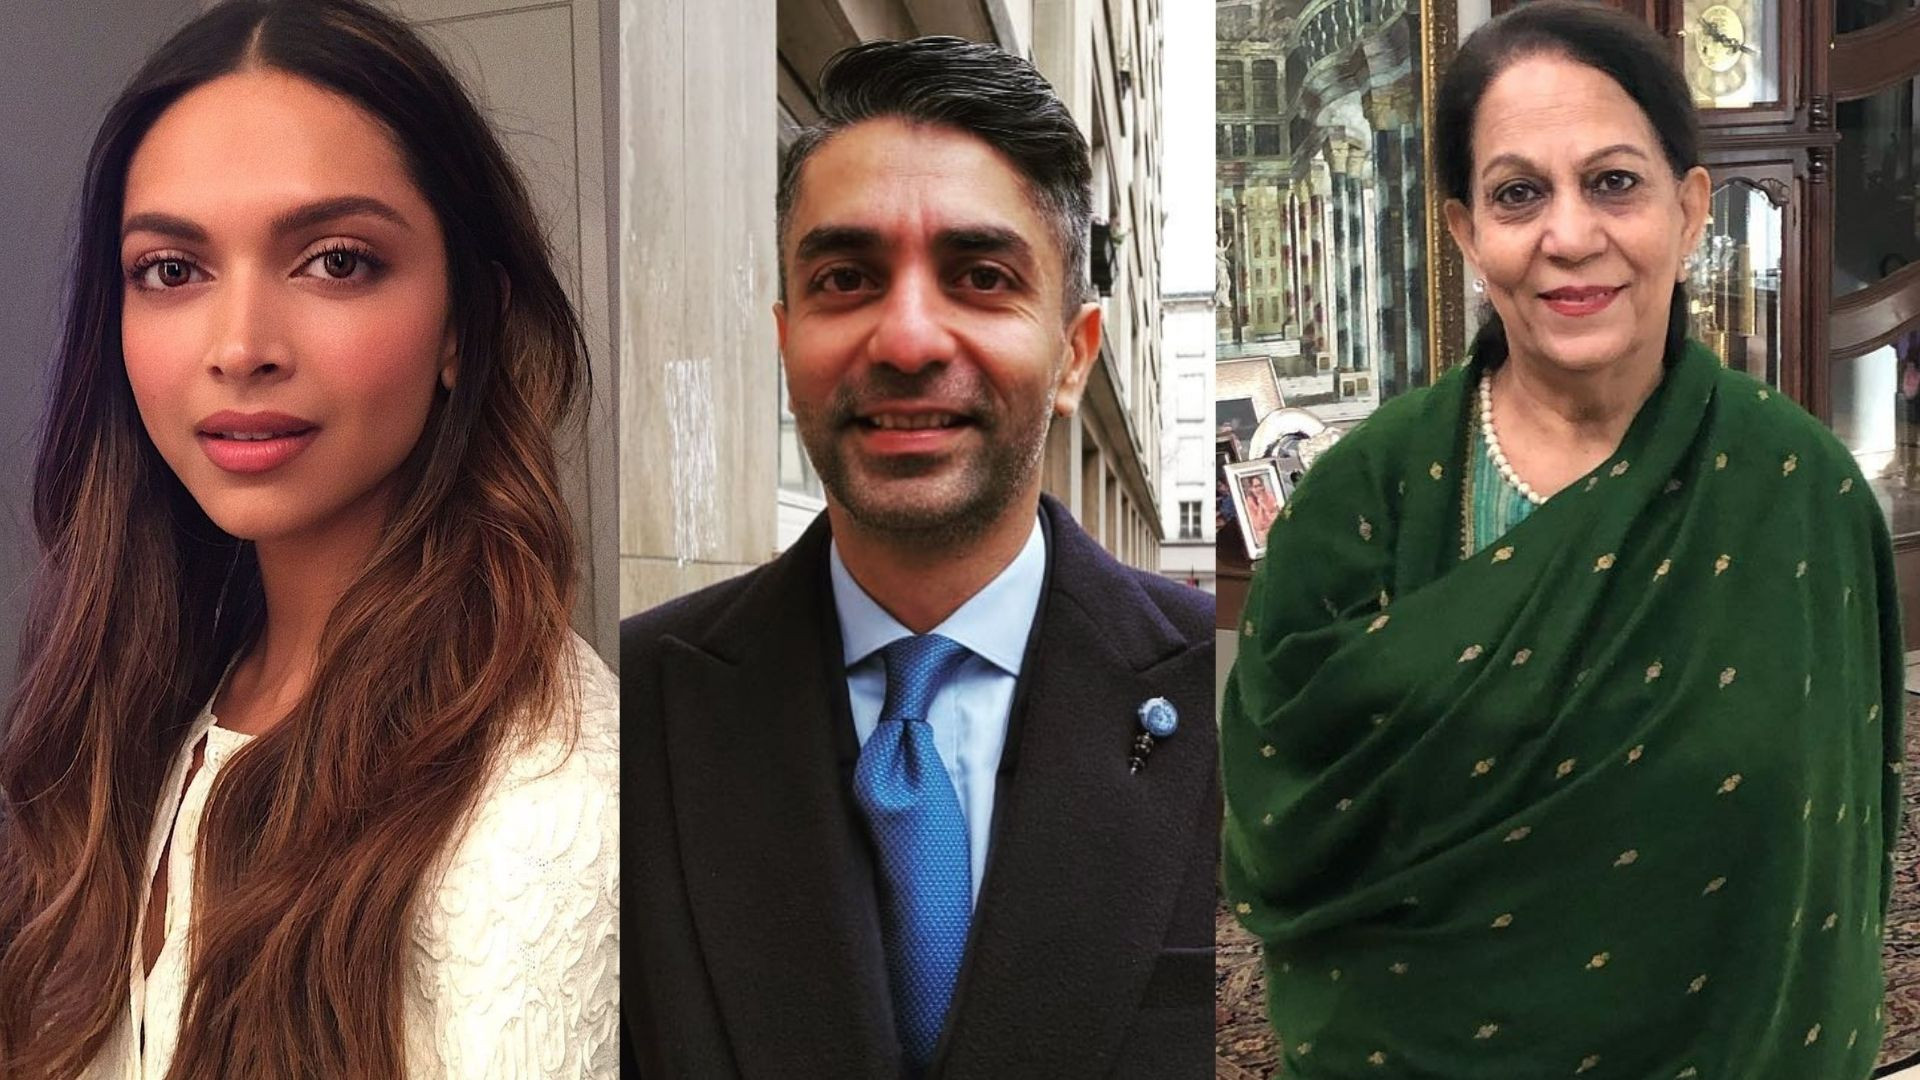 Deepika Padukone Is Stunned How Gold Medalist Abhinav Bindra's Mother Predicted His Win In The Olympics